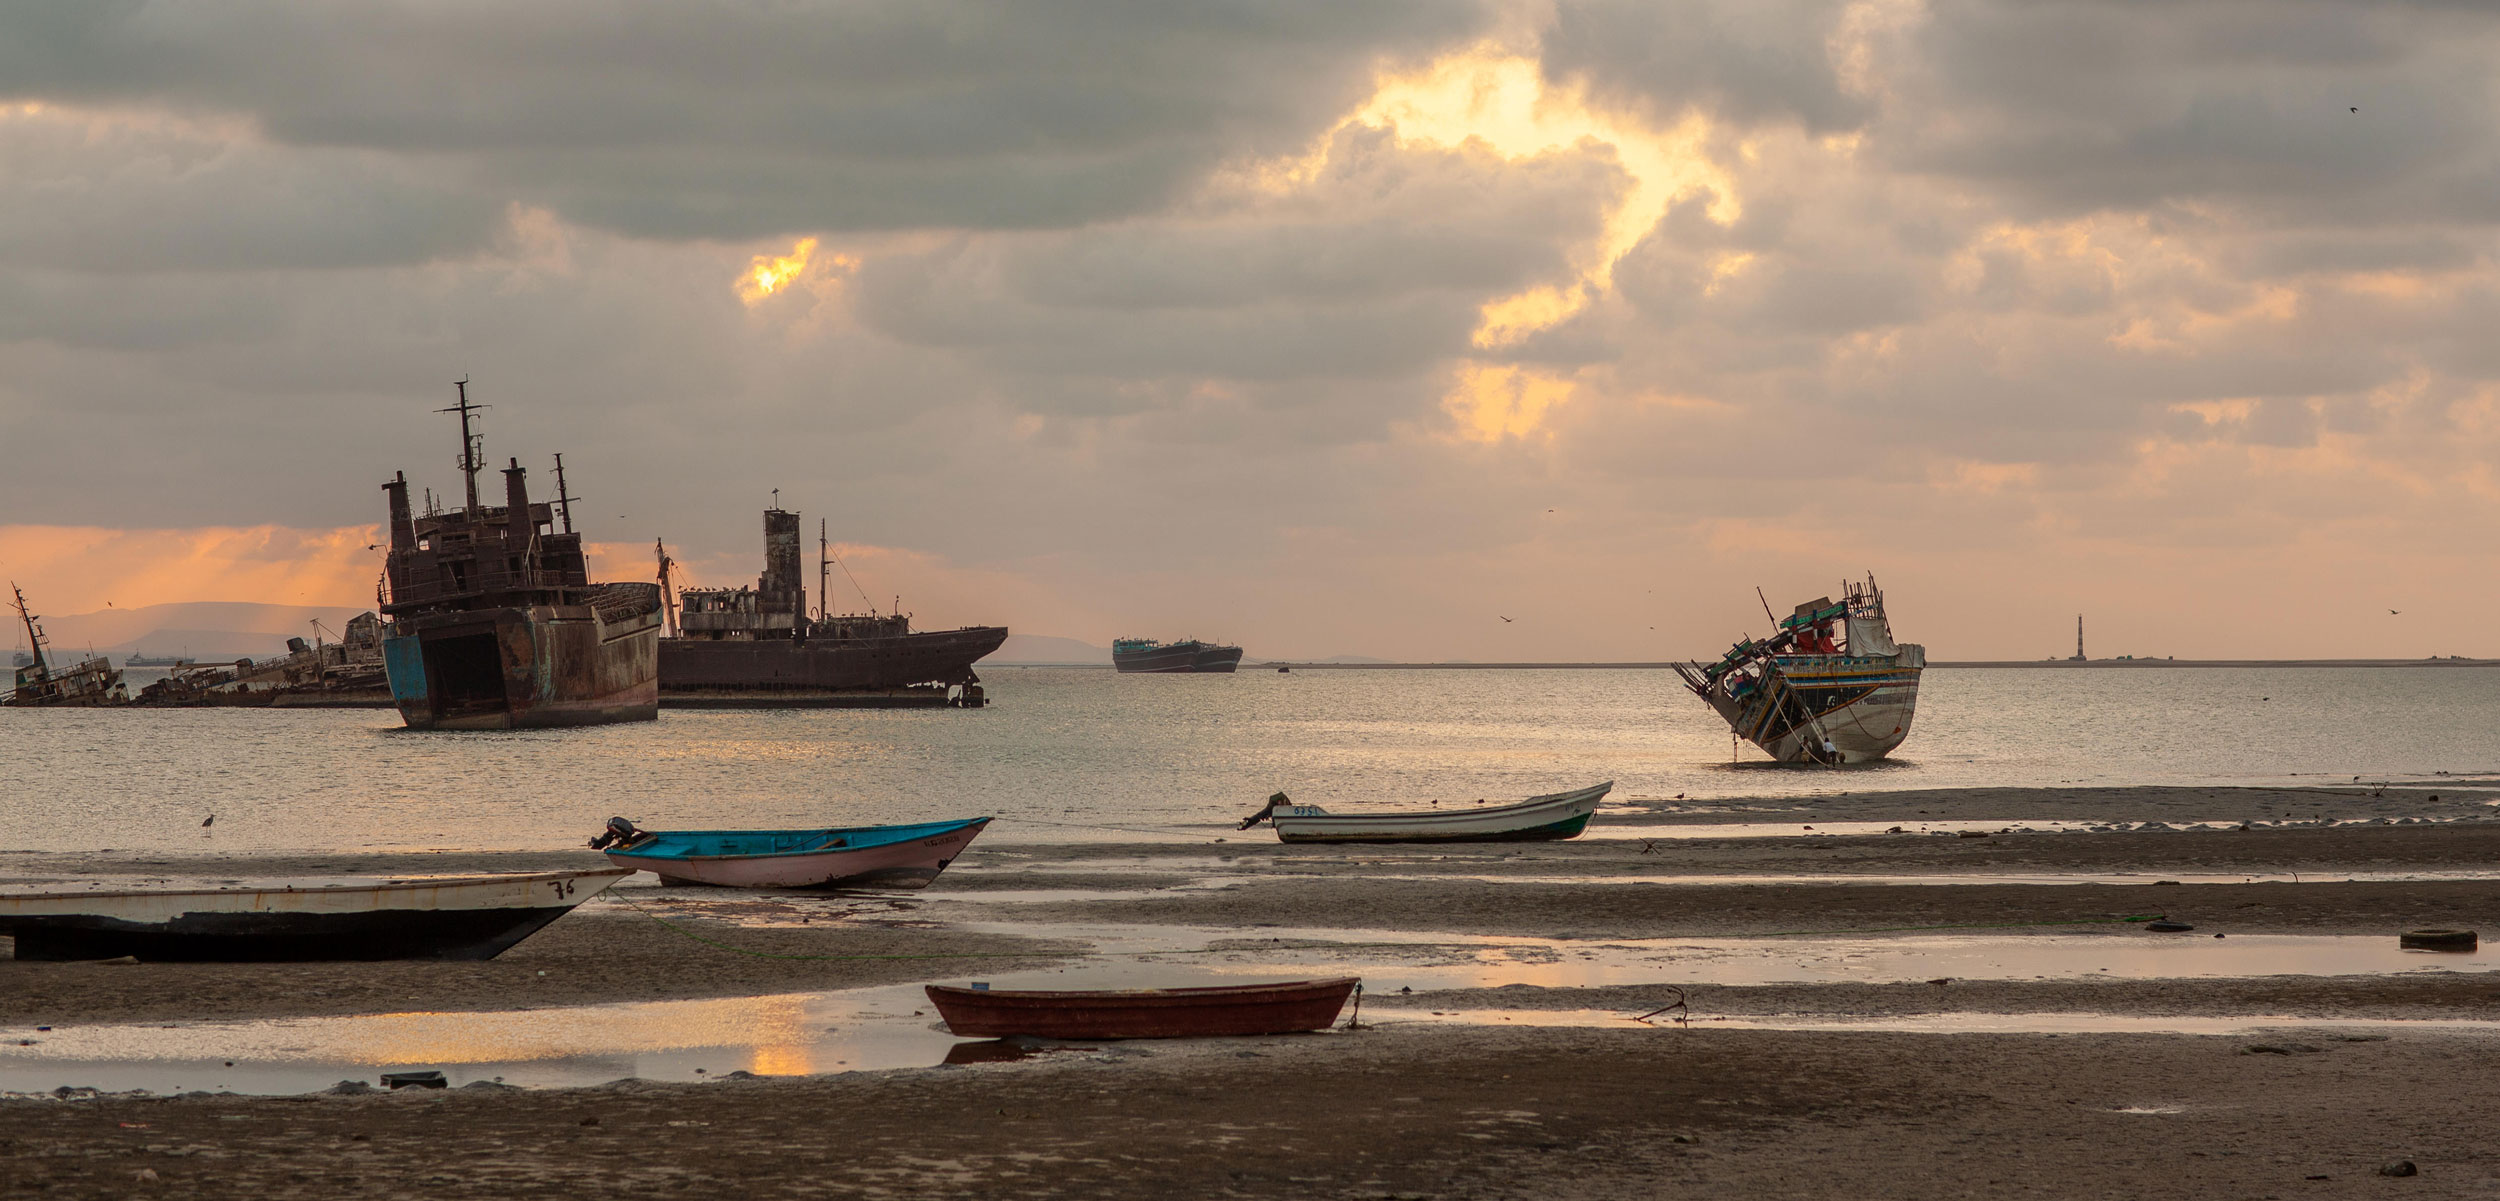 Boats on the beach at sunset, North-Western province, Berbera, Somalia